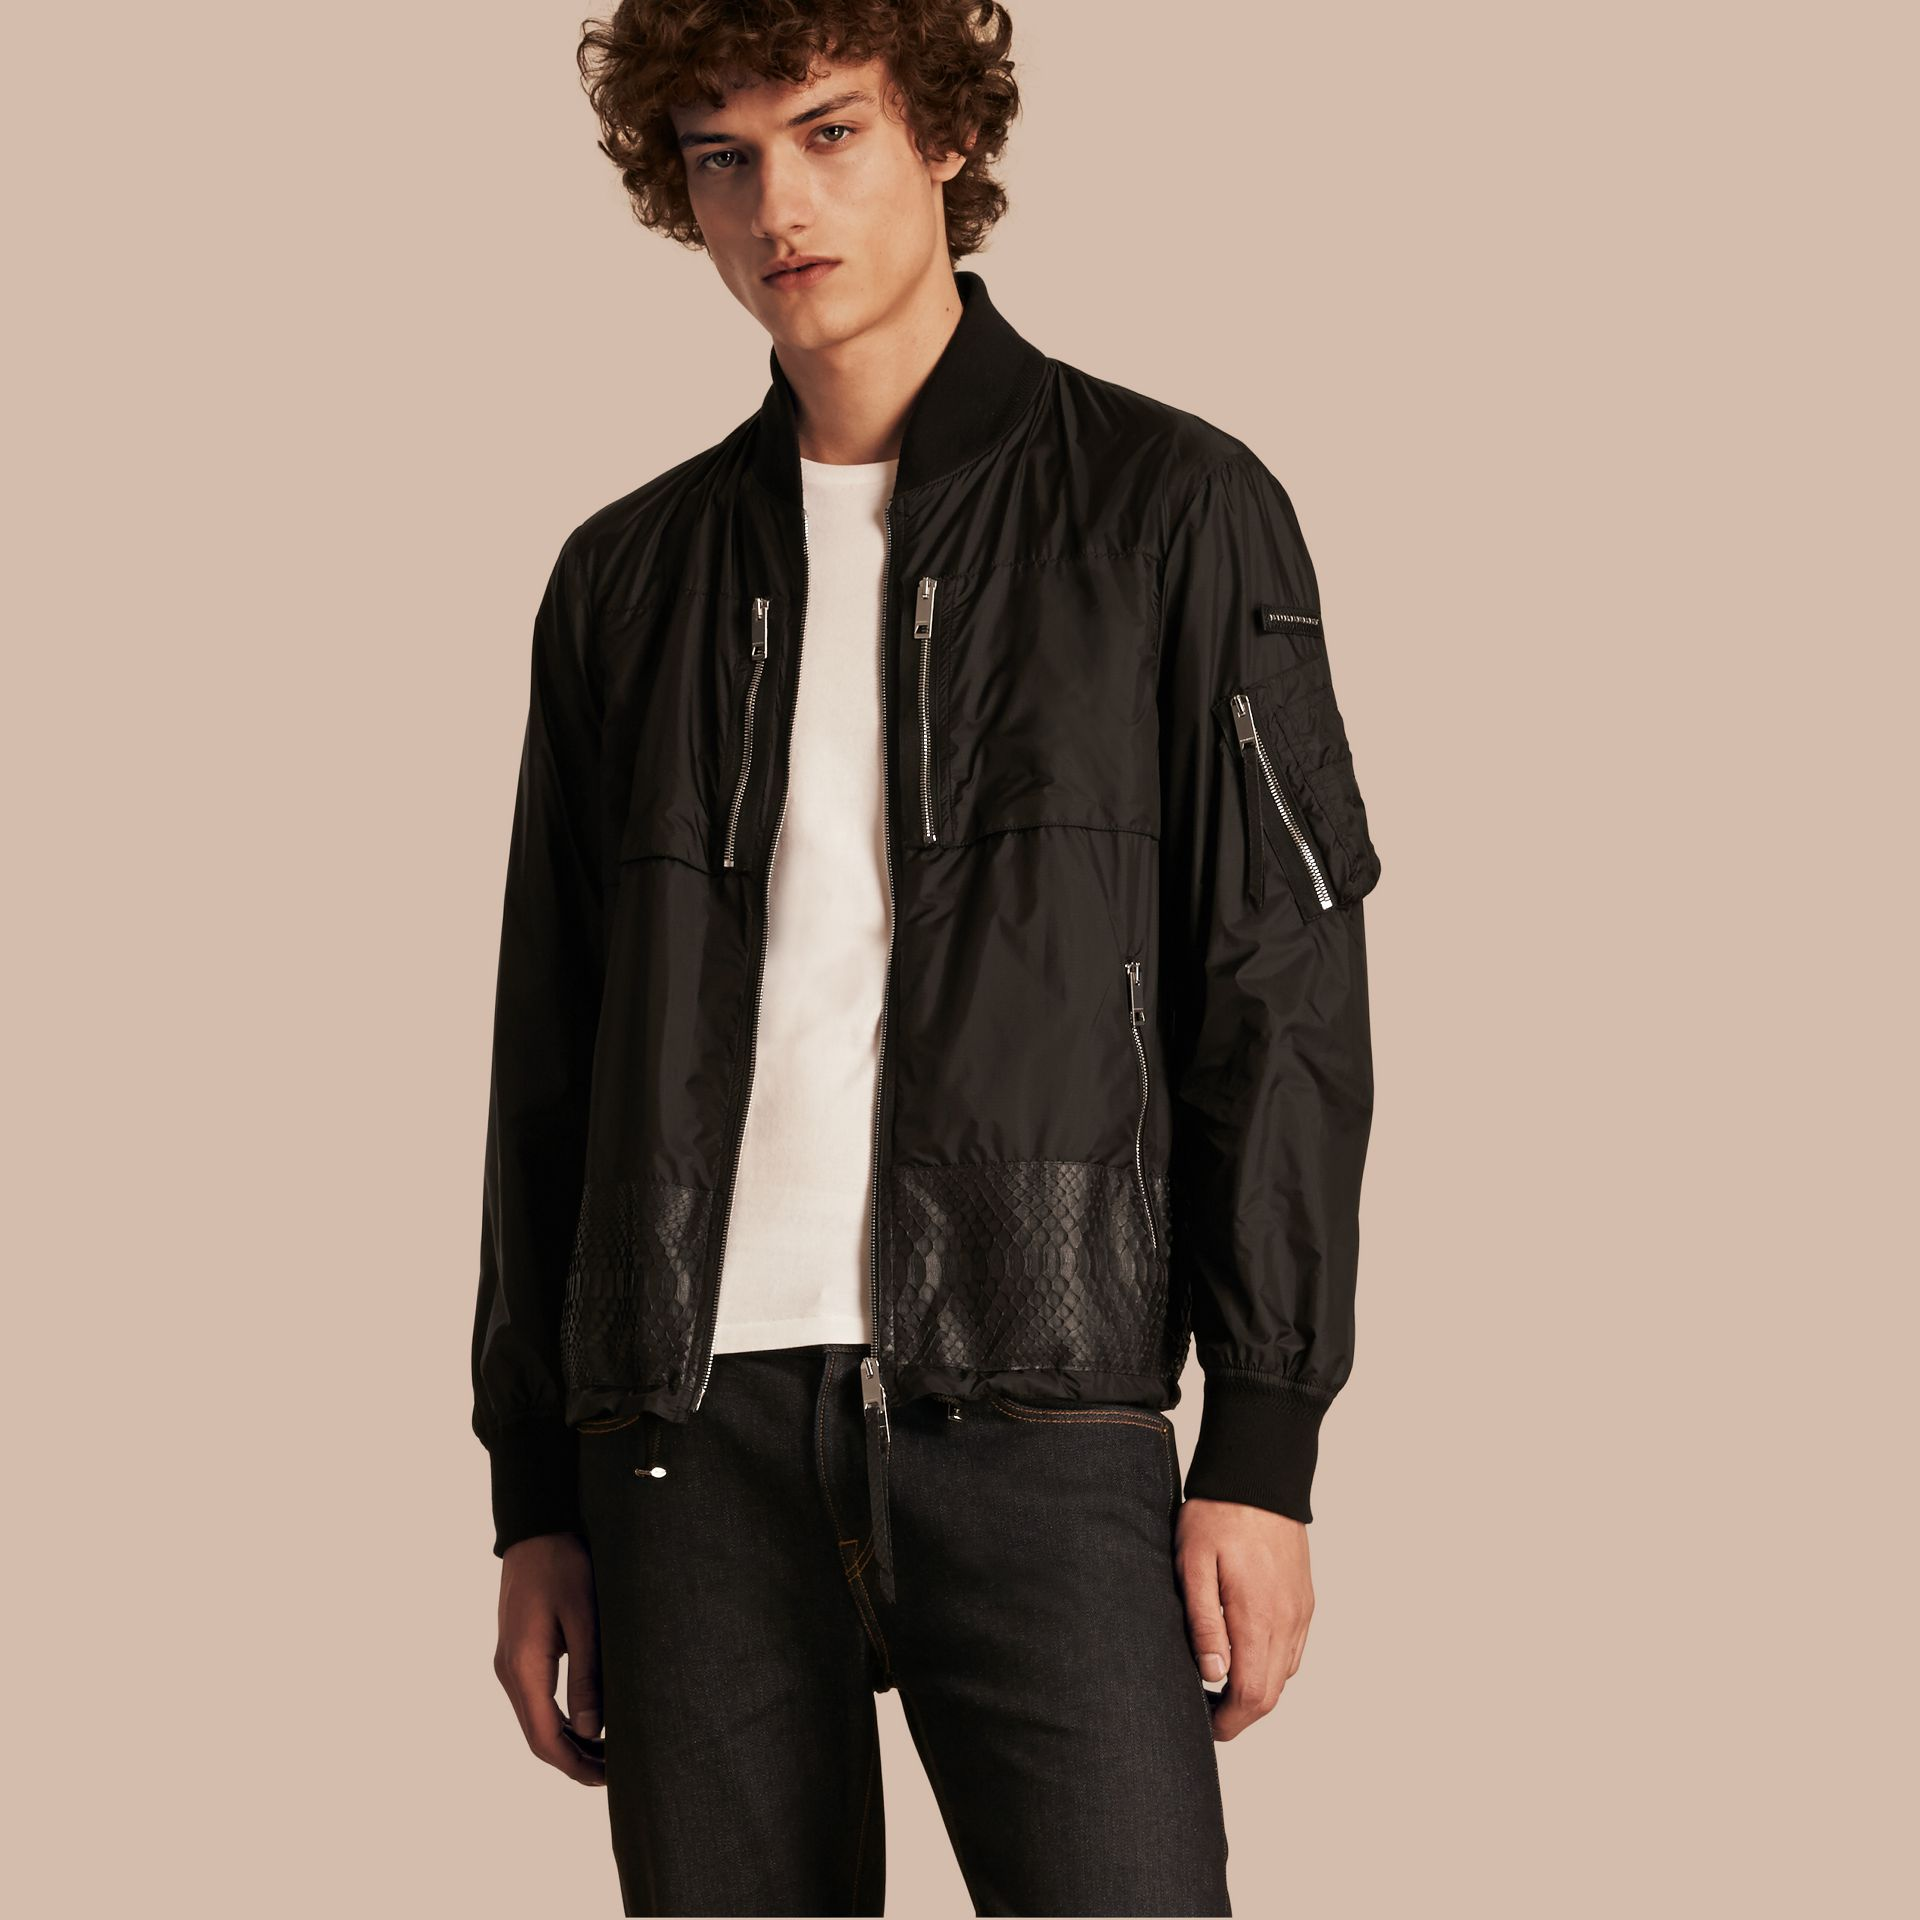 Lightweight Technical Bomber Jacket with Snakeskin in Black - Men | Burberry - gallery image 1